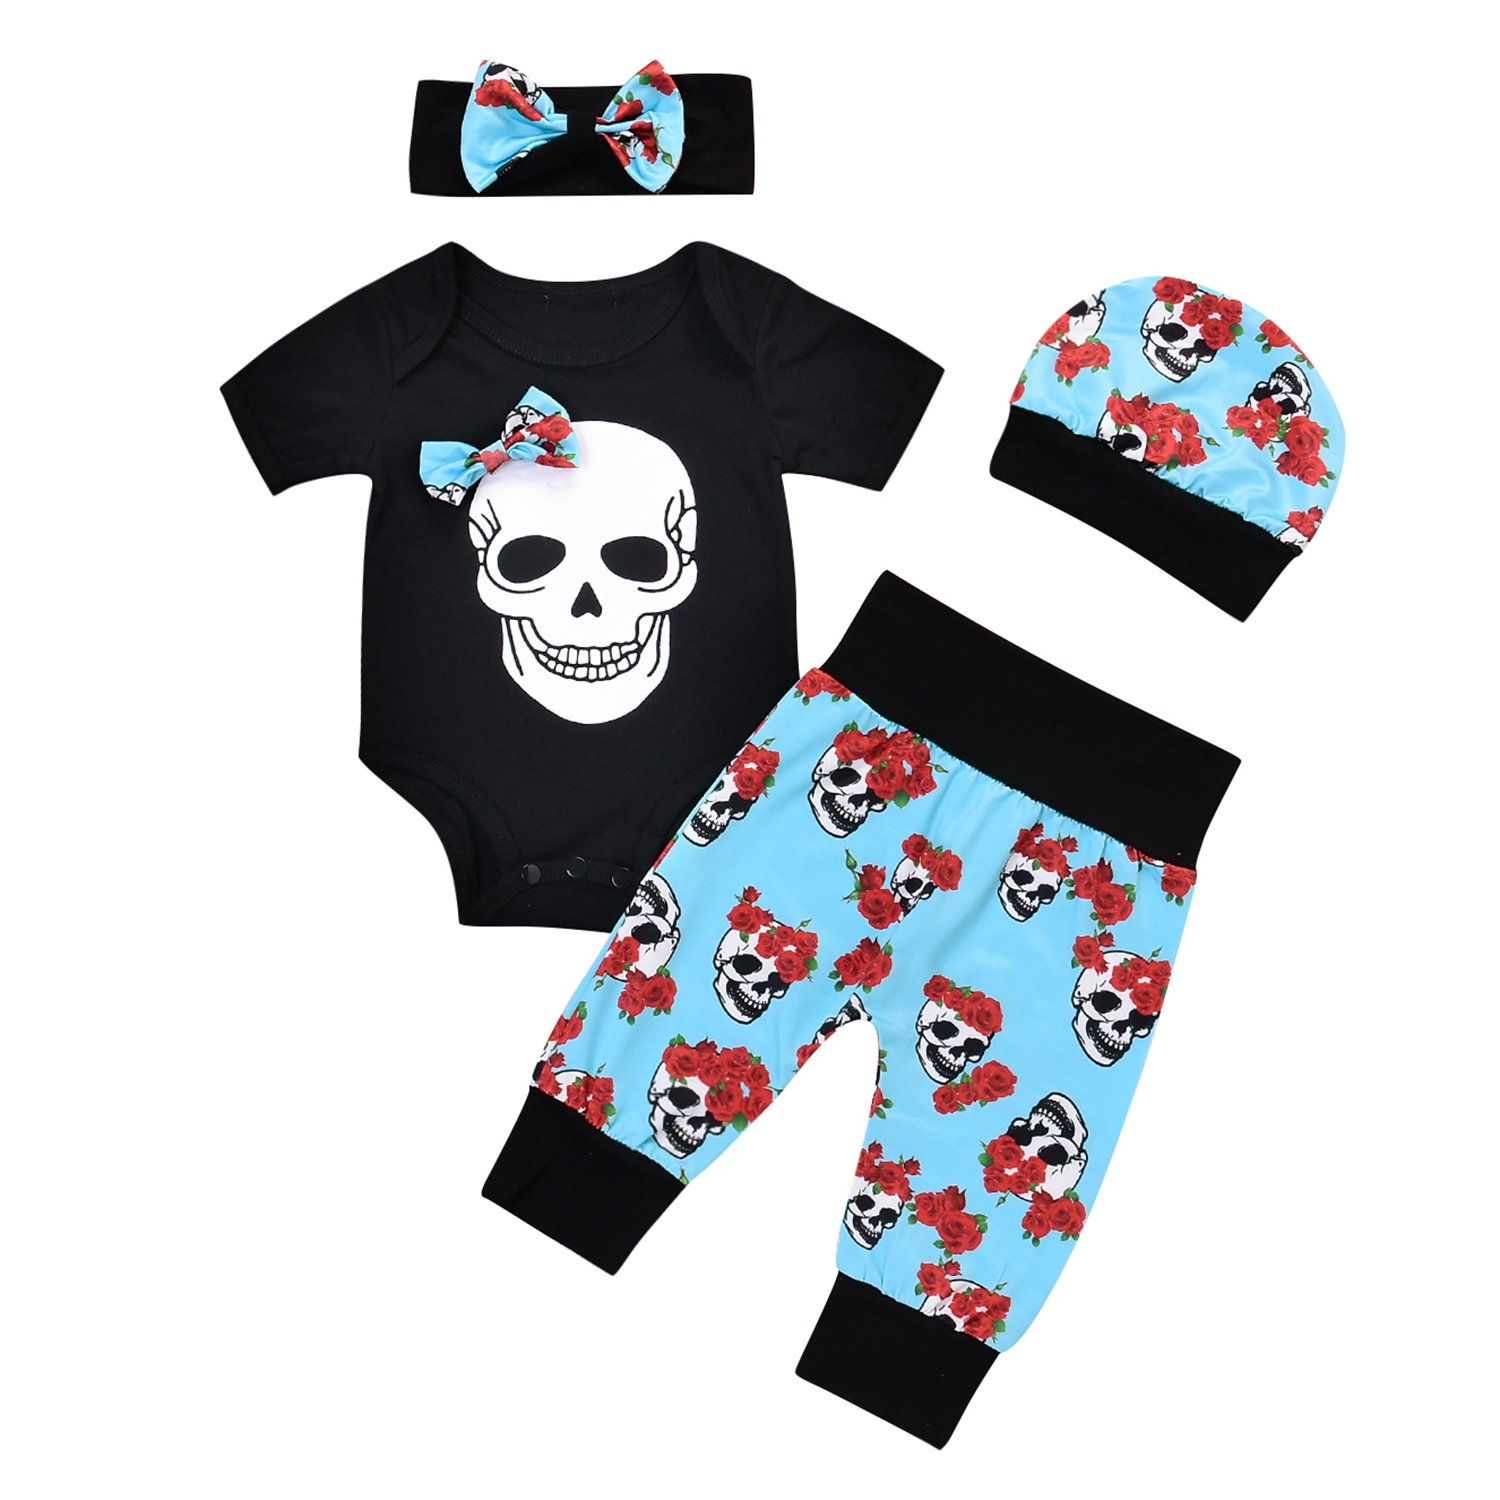 Newborn Baby Clothes Boys Girls Romper+Pants+Hat+Mitten Skull Halloween Outfit Set (6-12 Months, Black+White) puseky 4354657687687